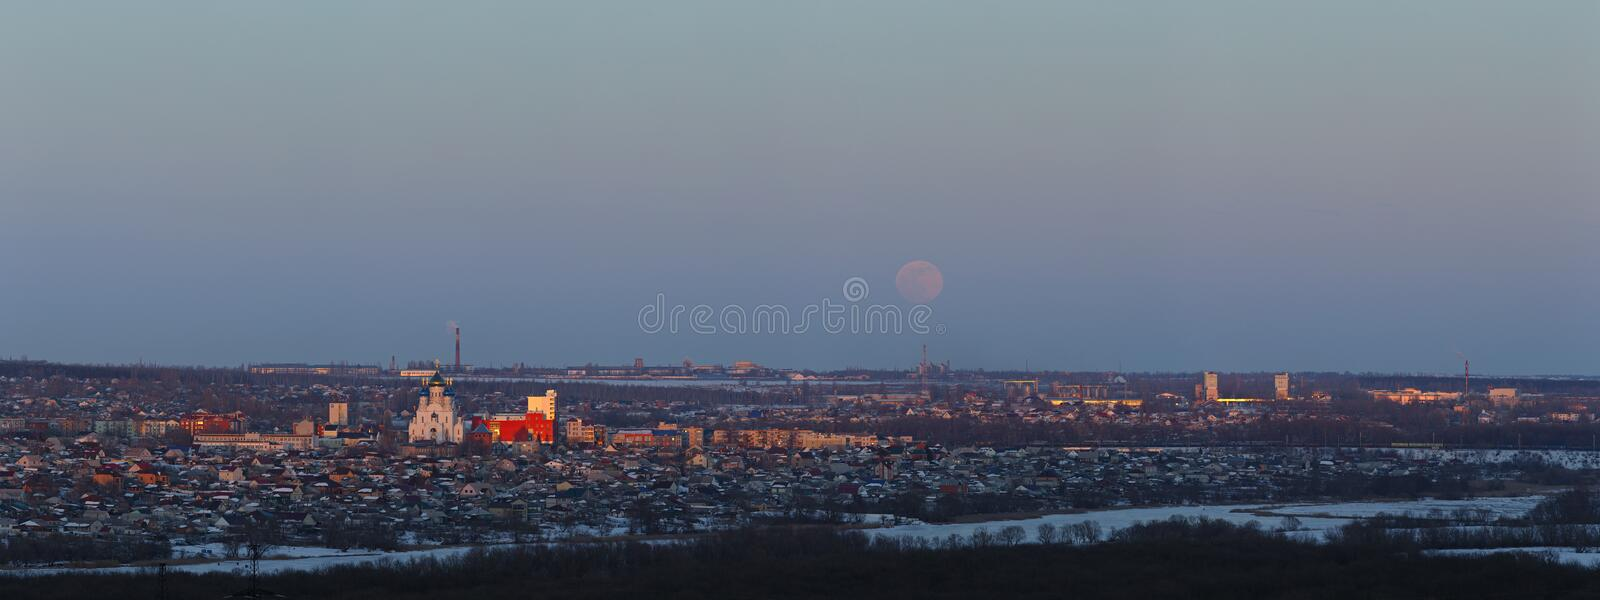 Full moon rising over the city. Sunset time in the twilight sky. Panoramic view of the Orthodox Church.  royalty free stock images